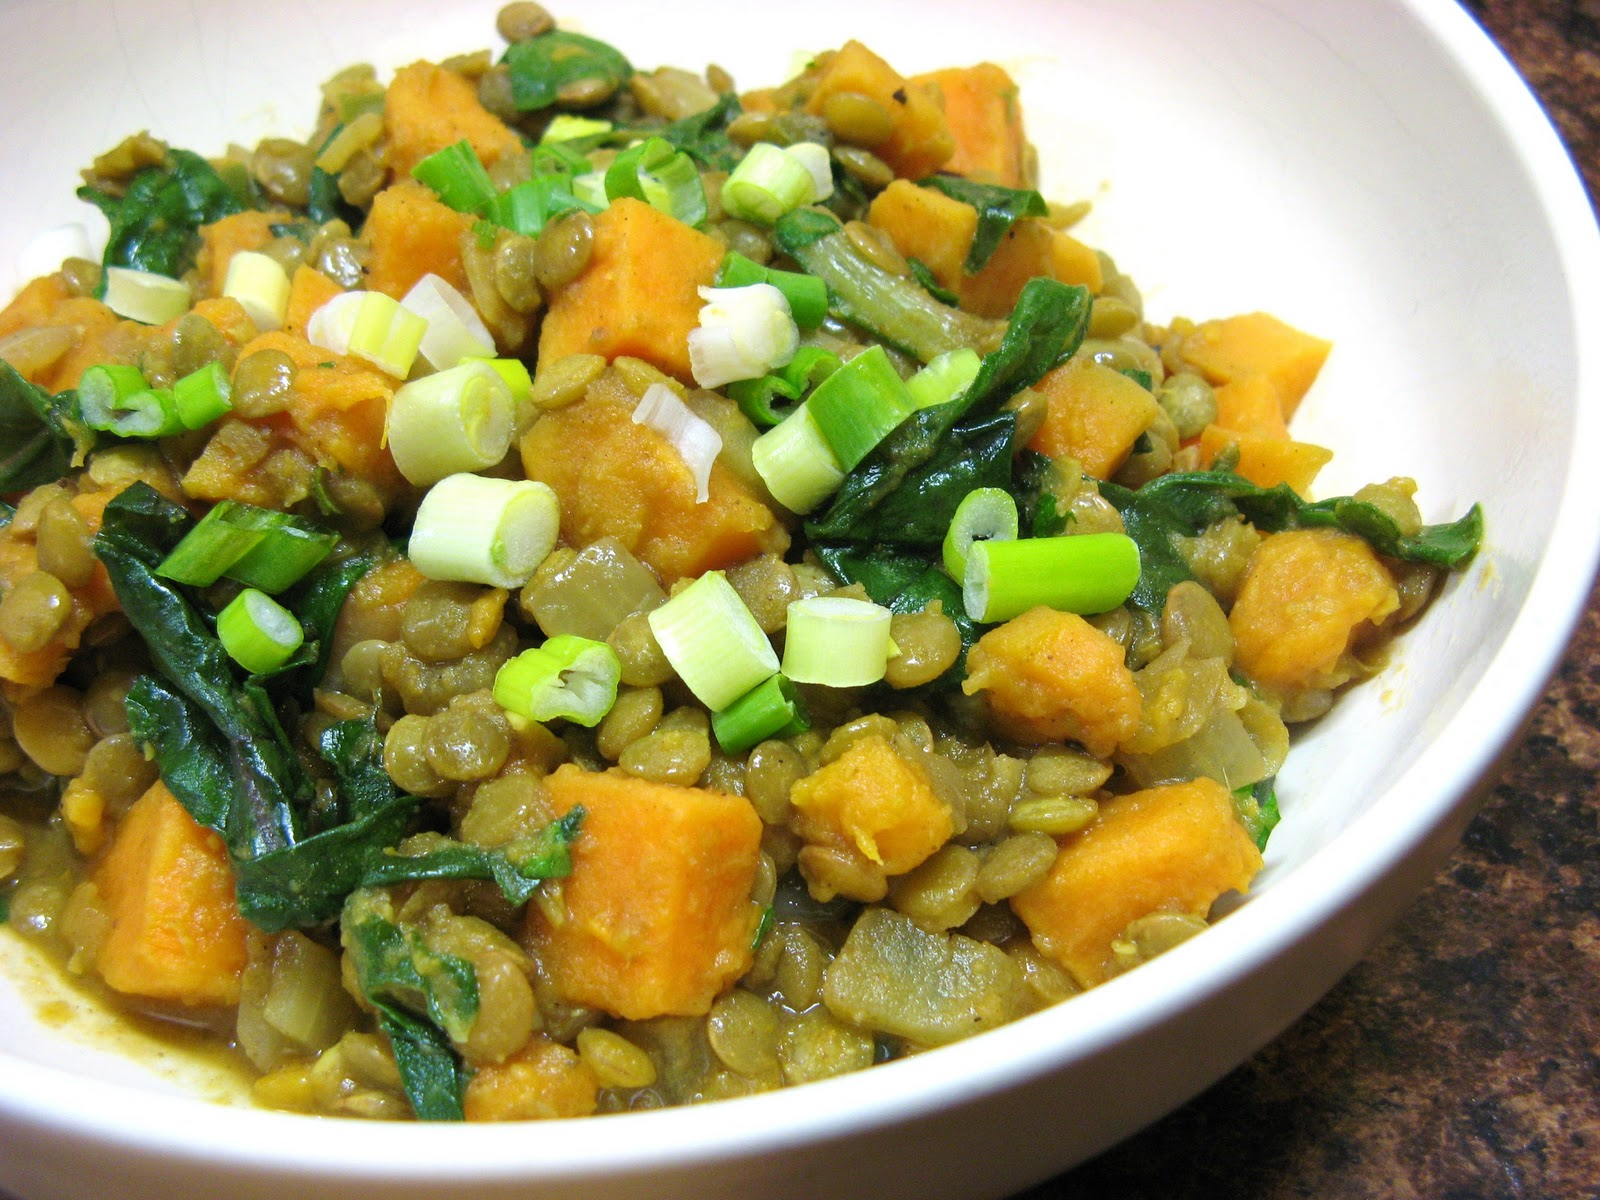 ... -Fed Newlyweds: Curried Lentils with Sweet Potatoes and Swiss Chard